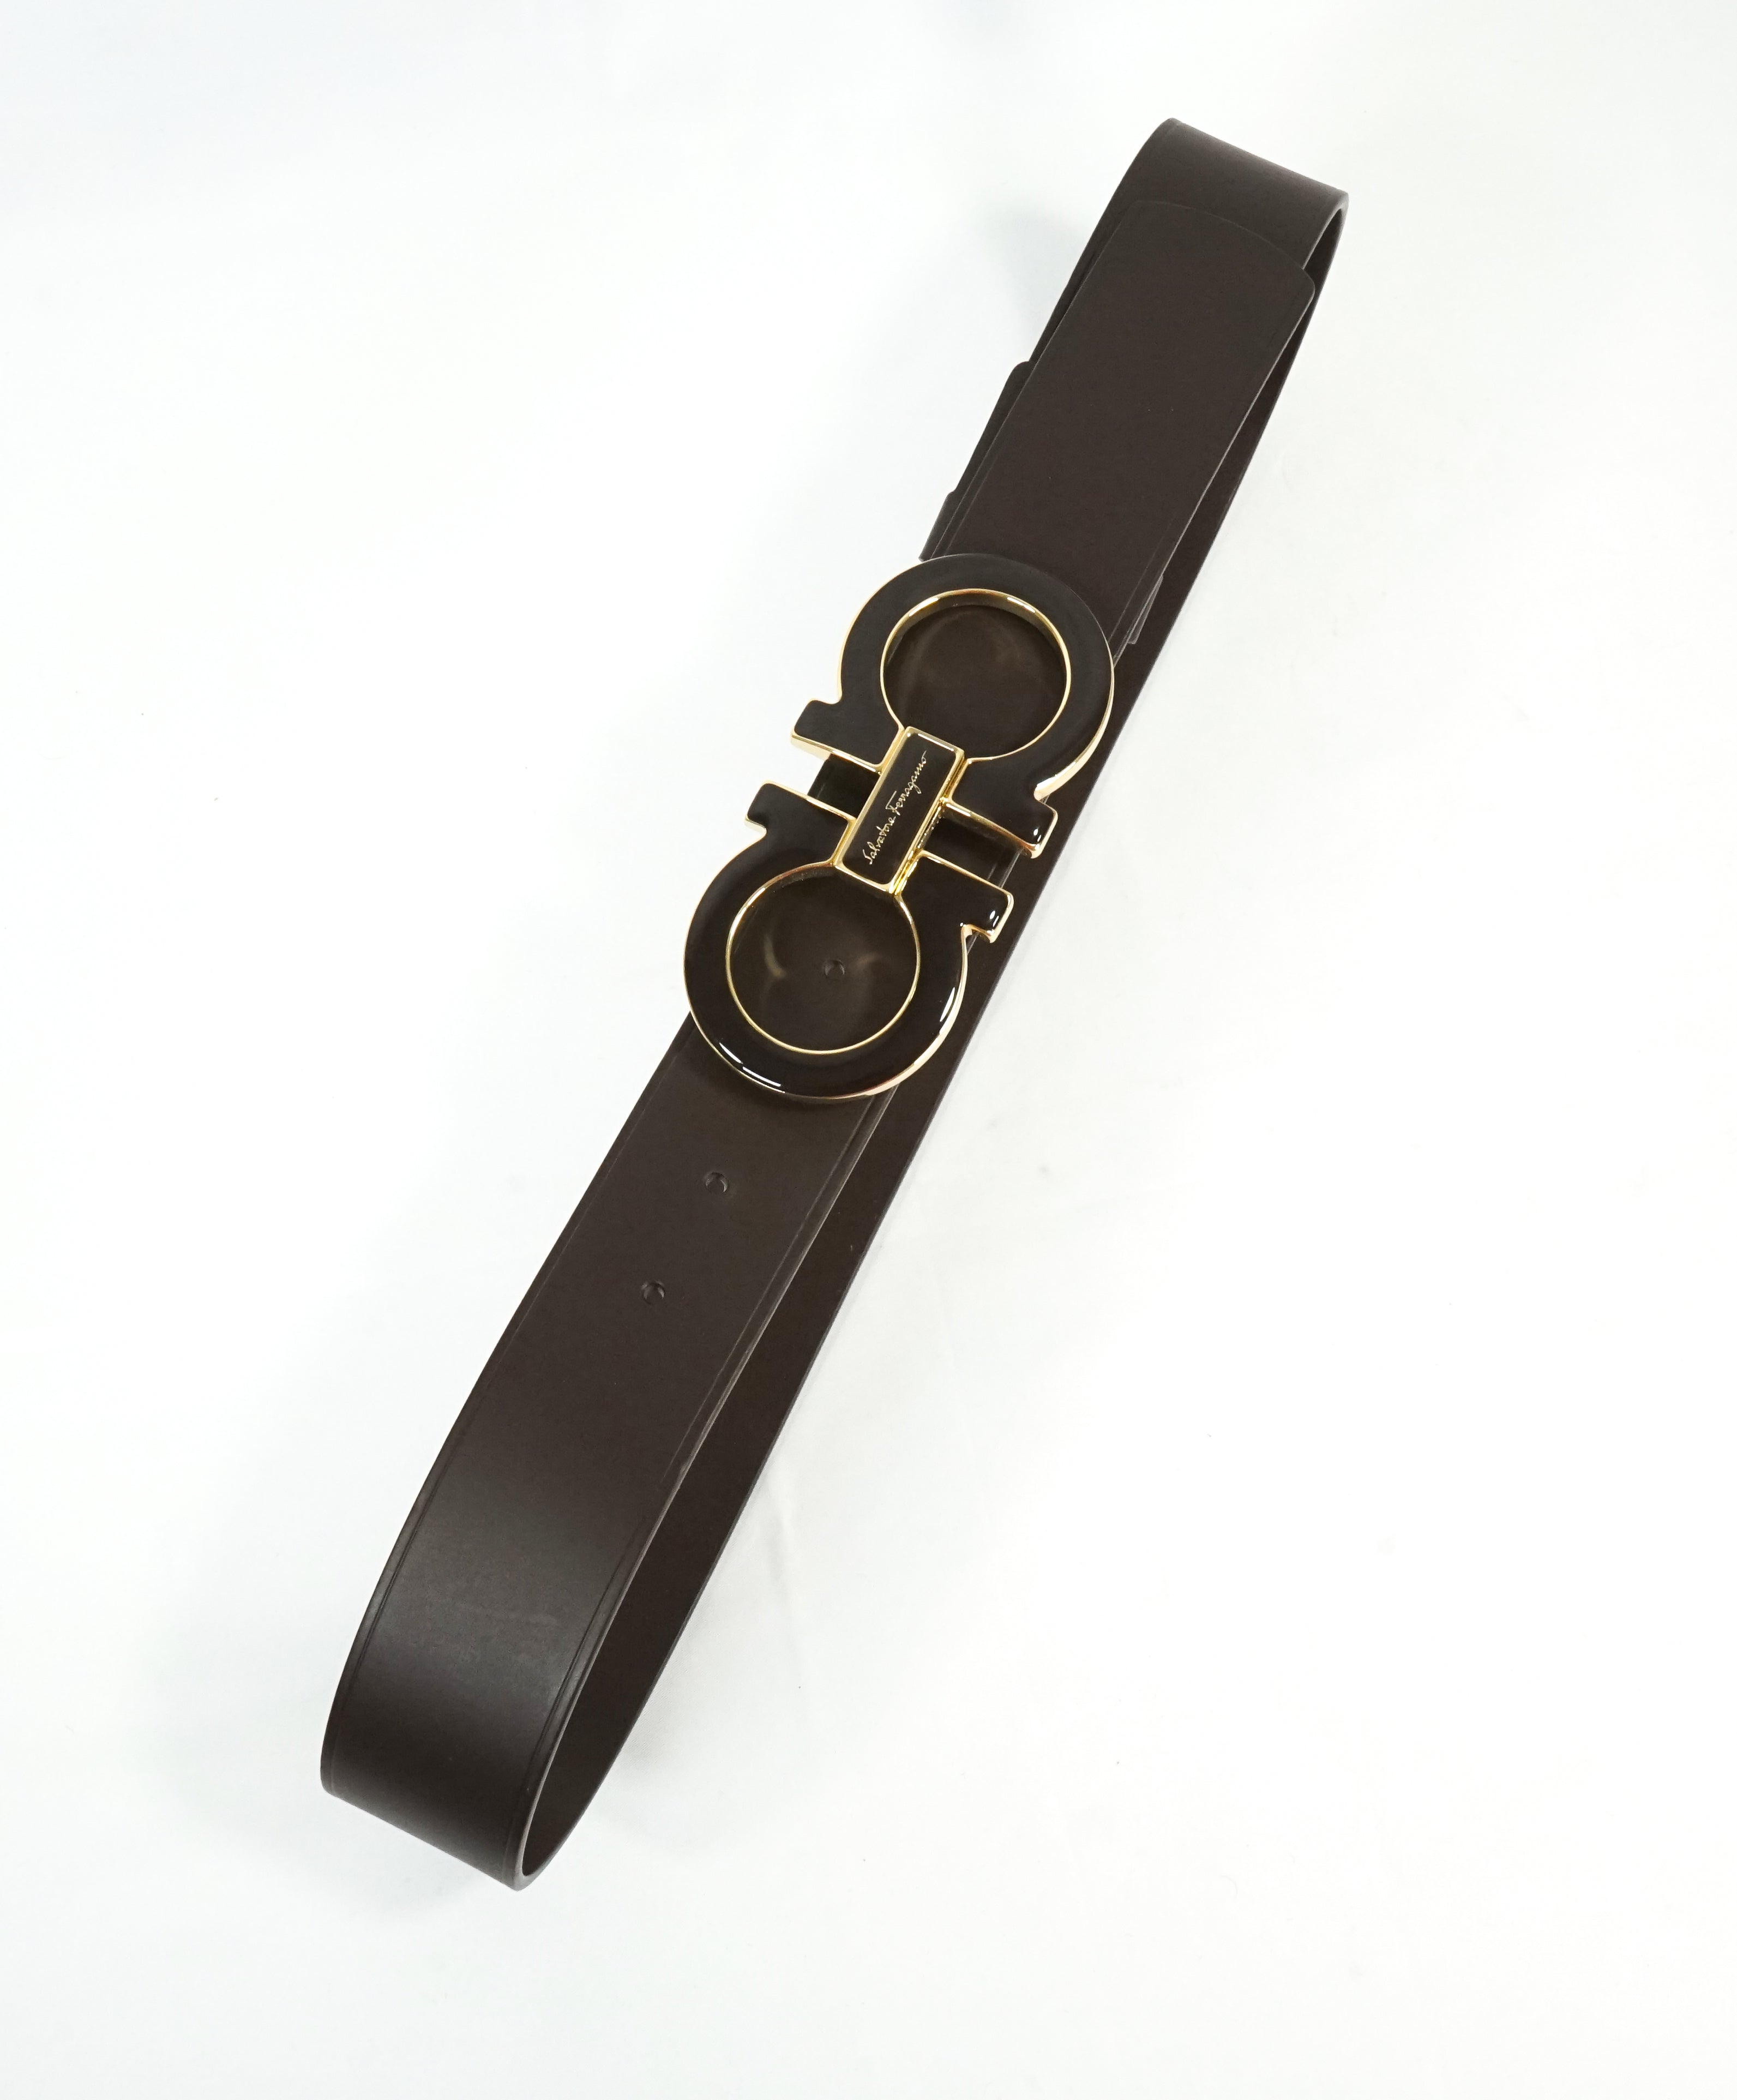 SALVATORE FERRAGAMO - Brown & Gold Enamel Oversized Leather Gancini Belt - 36W